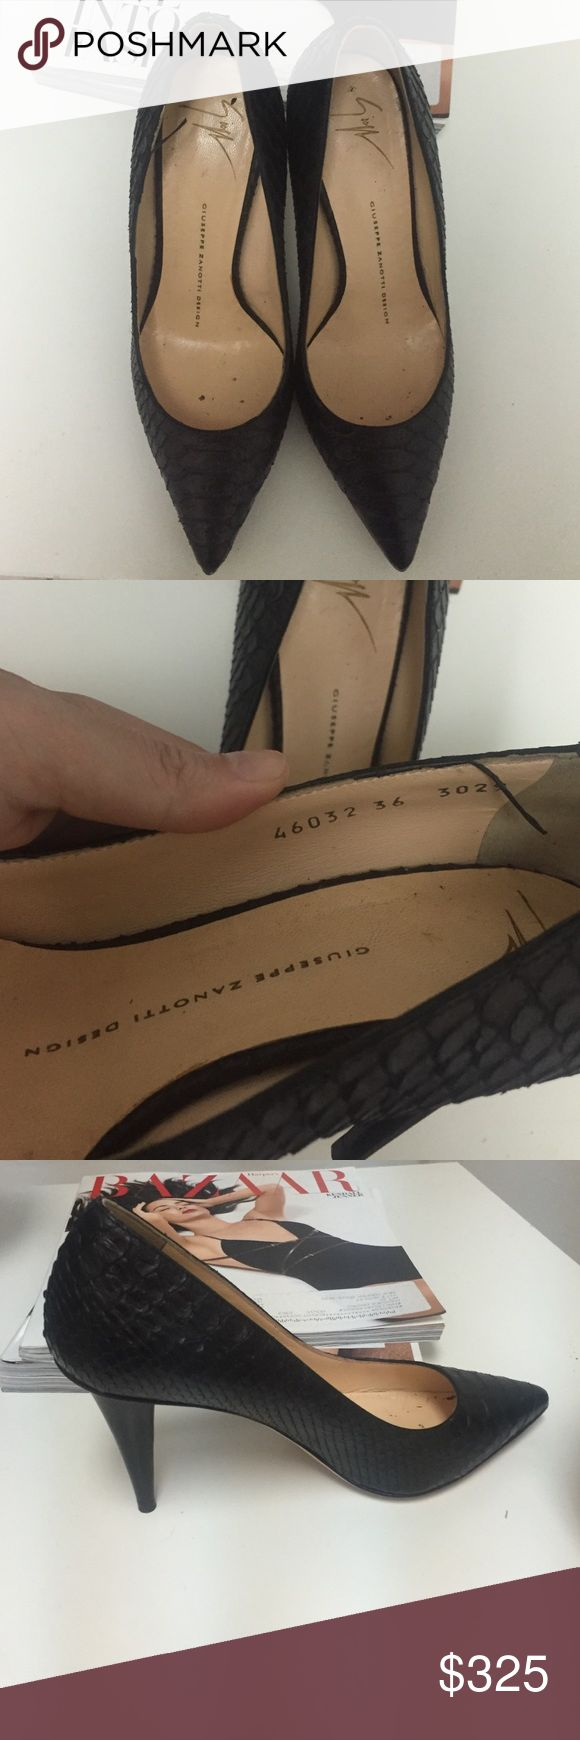 Giuseppe heels Black snake textured heels. Perfect height for work and walking around town. Great condition! Giuseppe Zanotti Shoes Heels